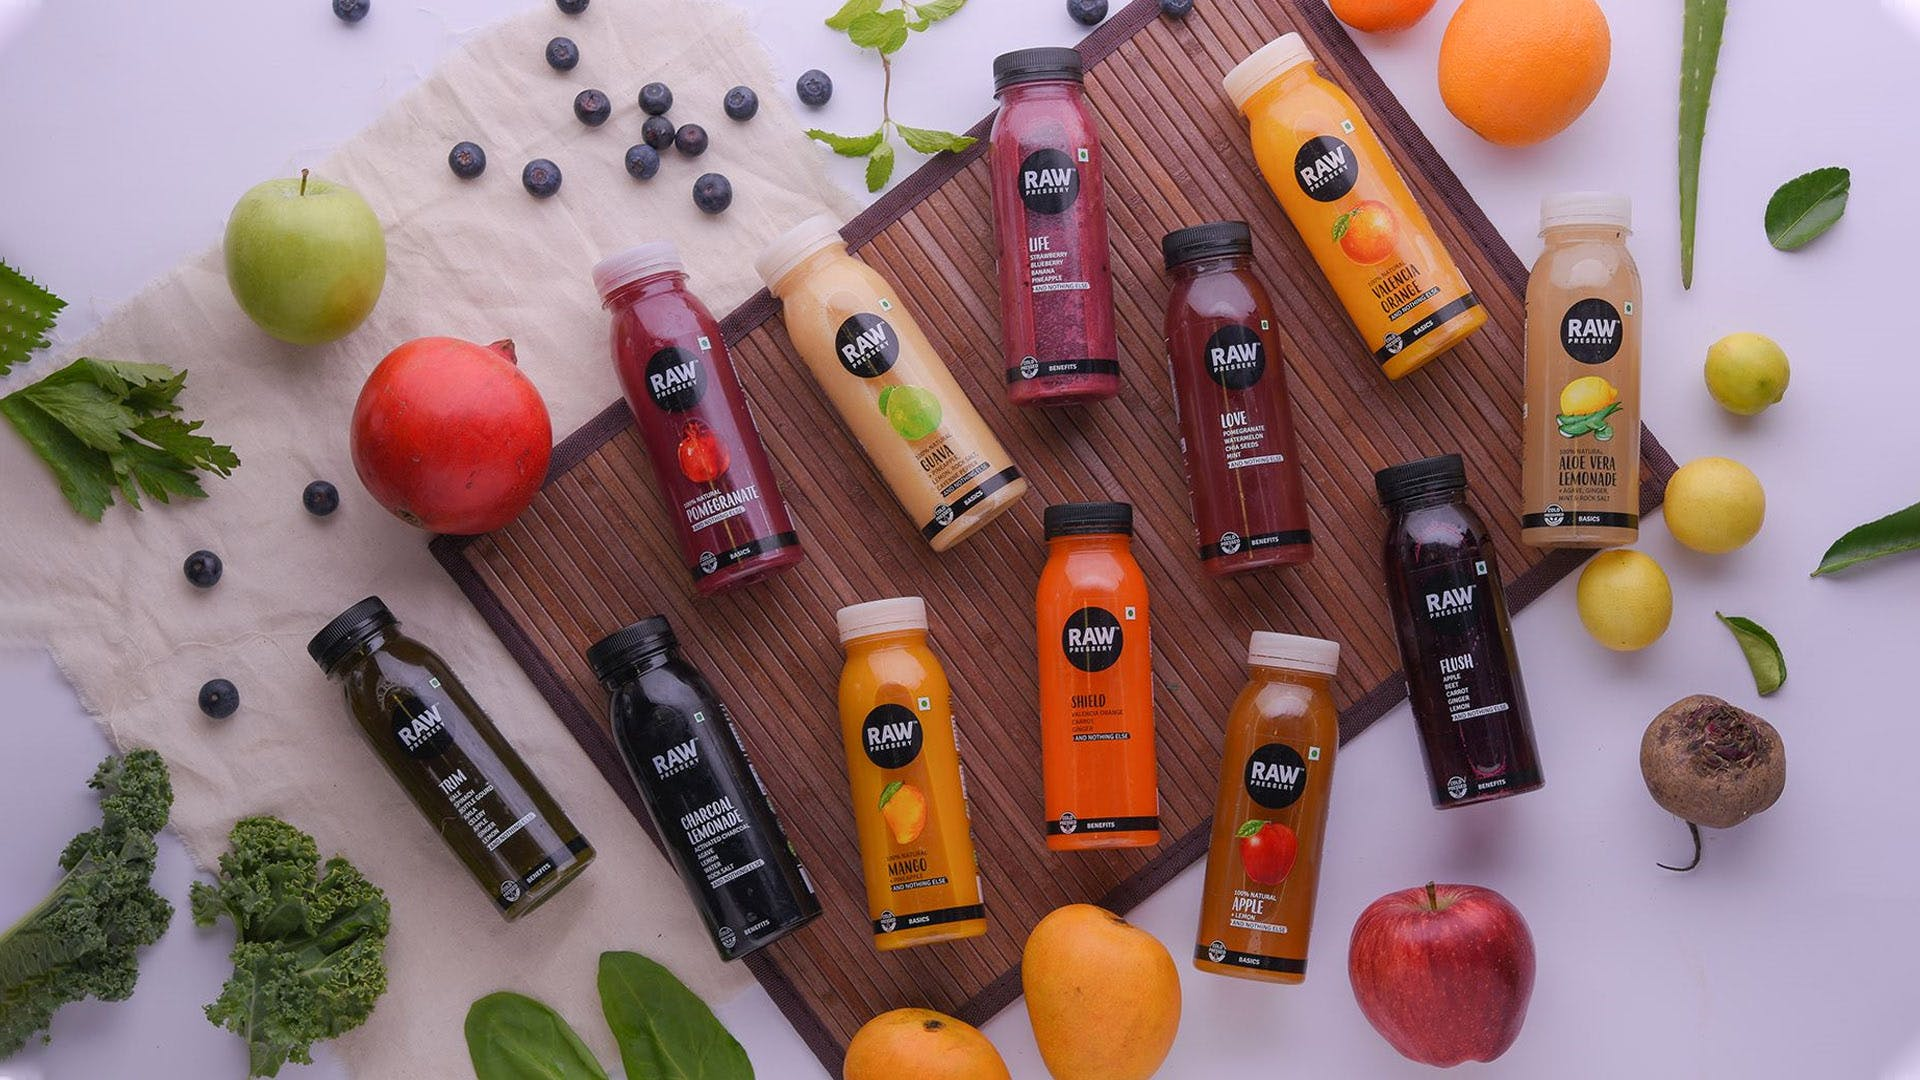 image - Get 25% Off On Raw Pressery's Healthy Juices, Detox Cleanses & More